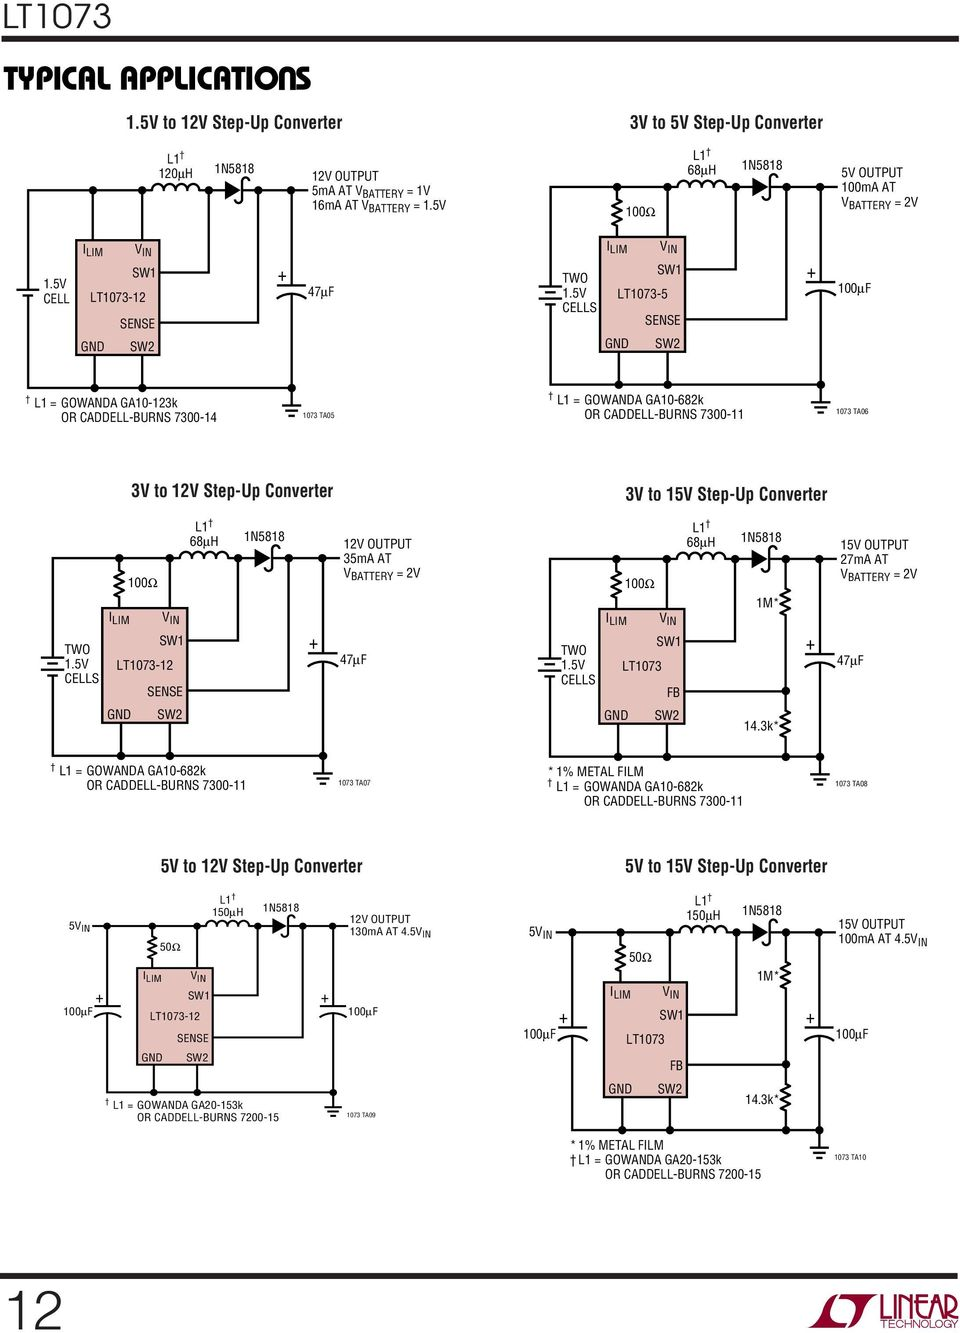 TWO CELLS 3V to 15V Step-p Converter 100Ω 68µH 15V OTPT 27mA AT V BATTERY = 2V 1M* 14.